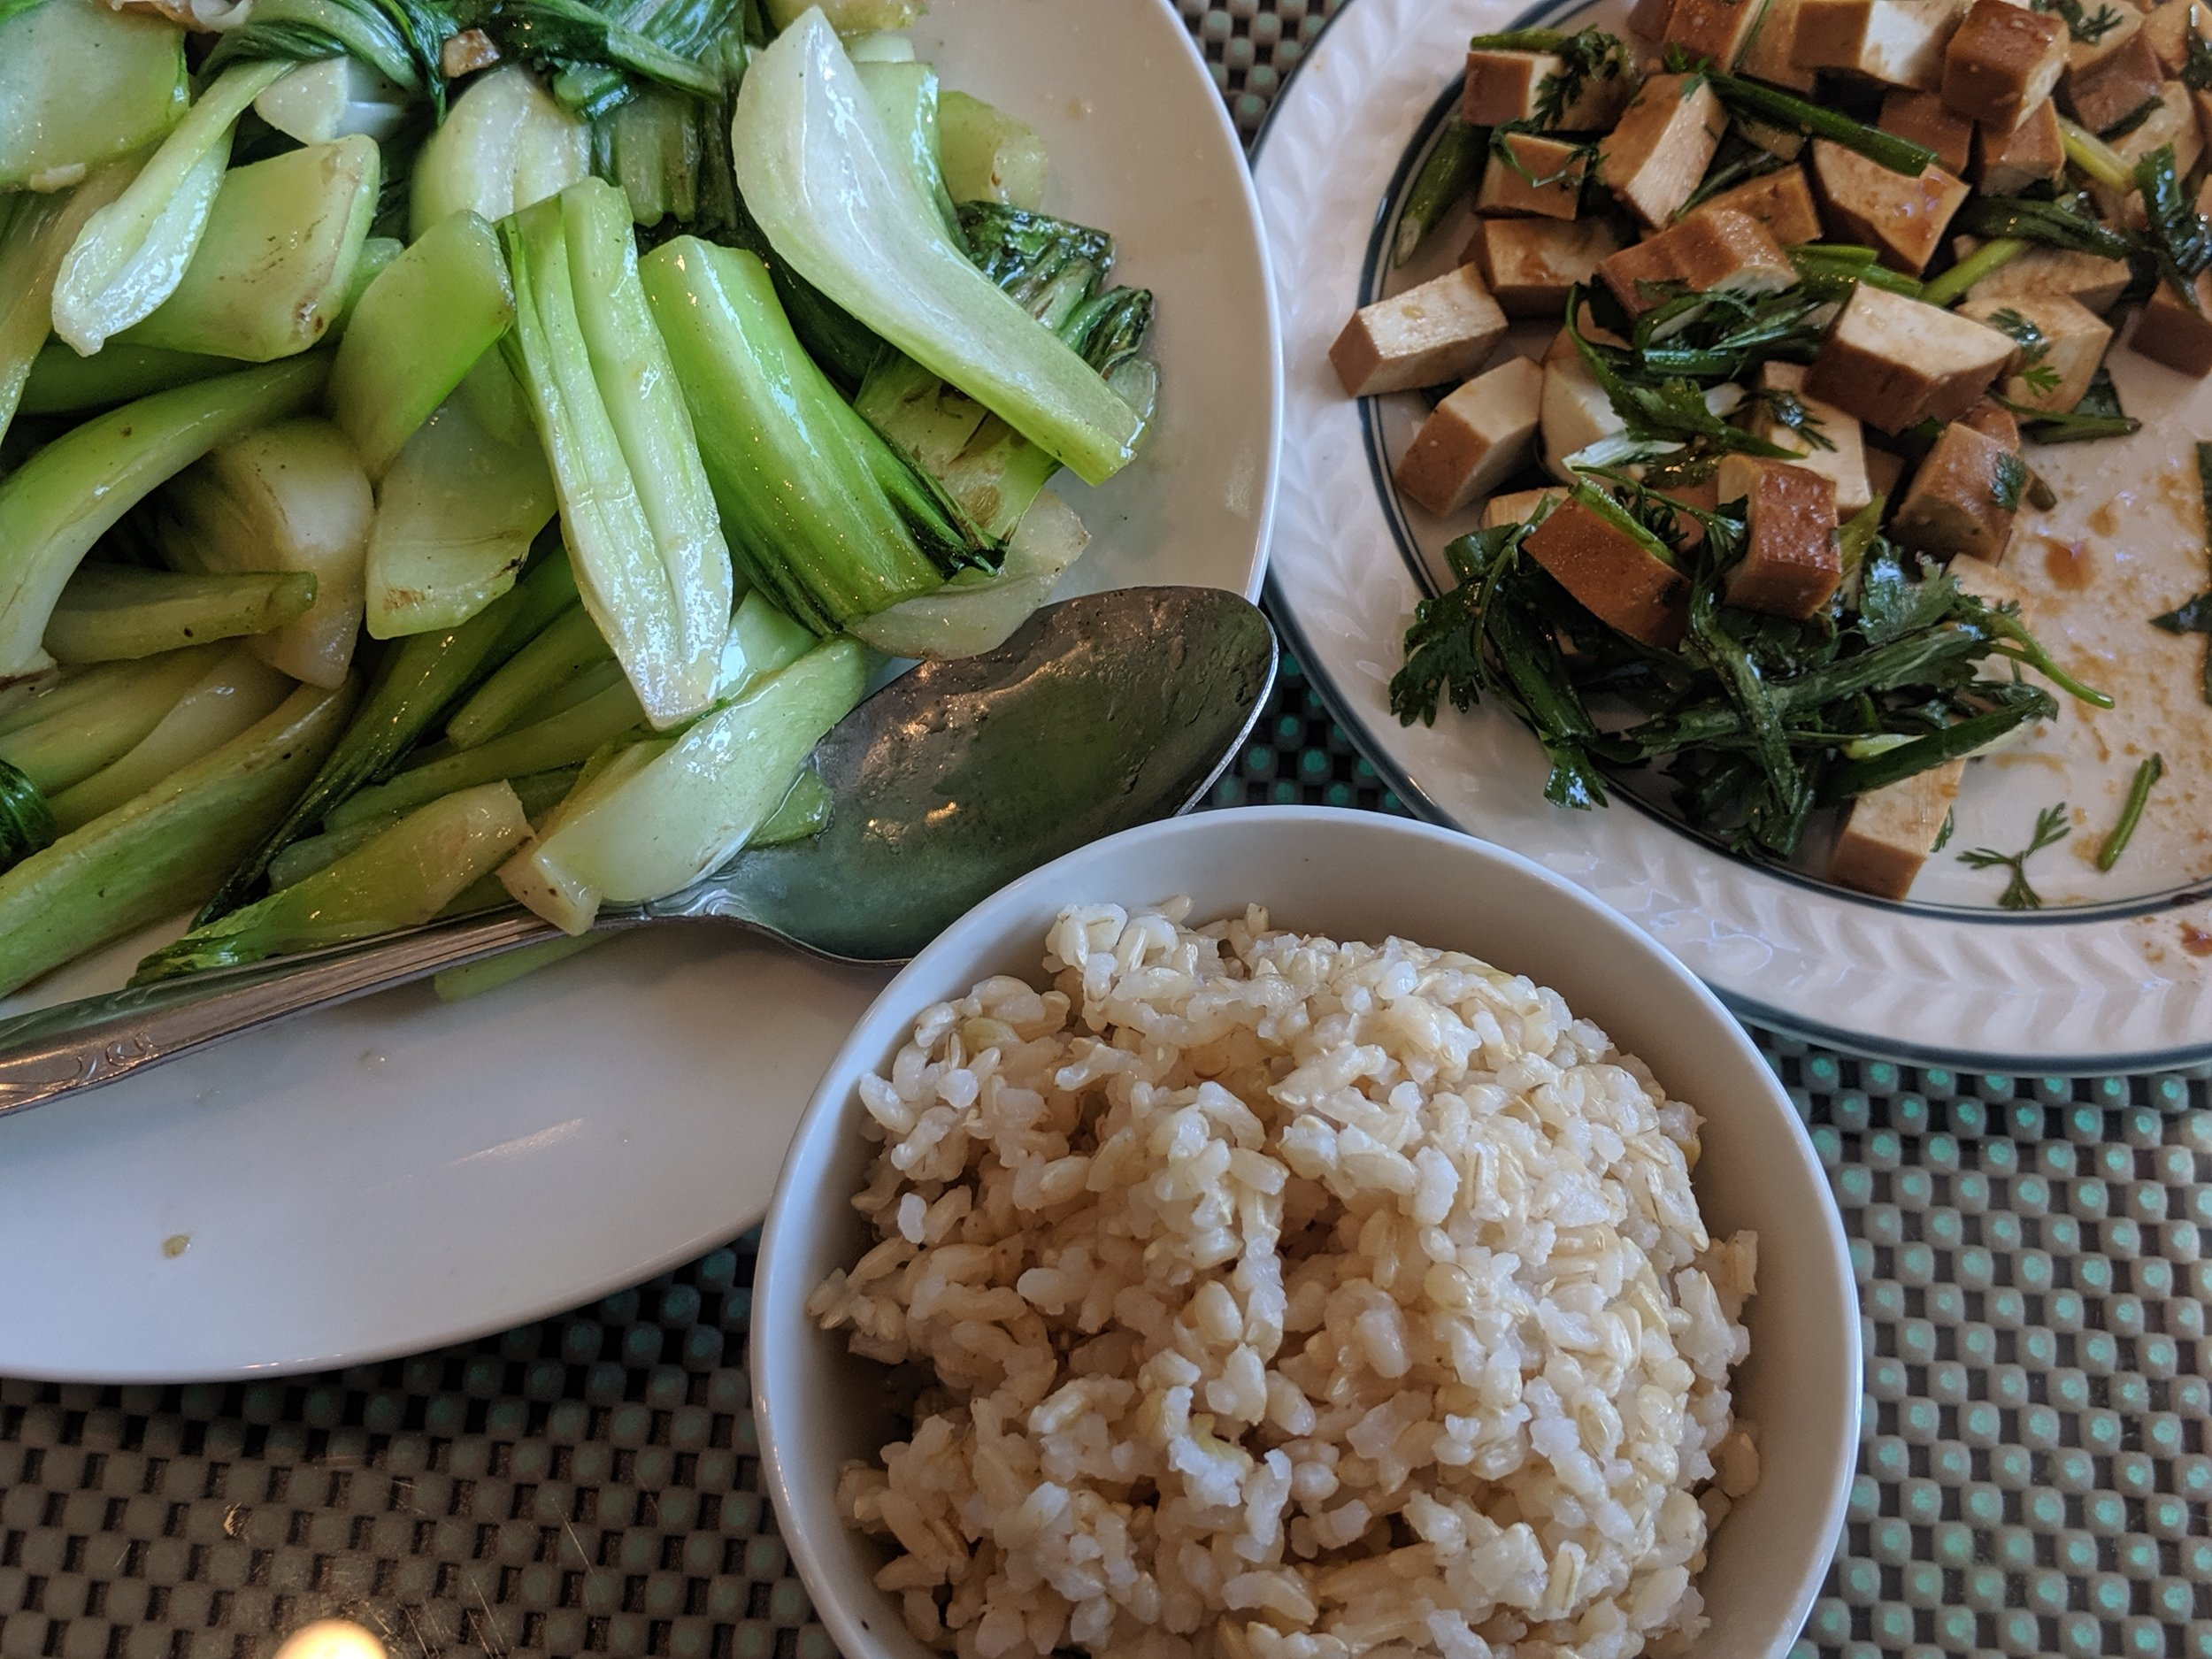 Although the tofu was the star, the bok choy was a very strong supporting player!